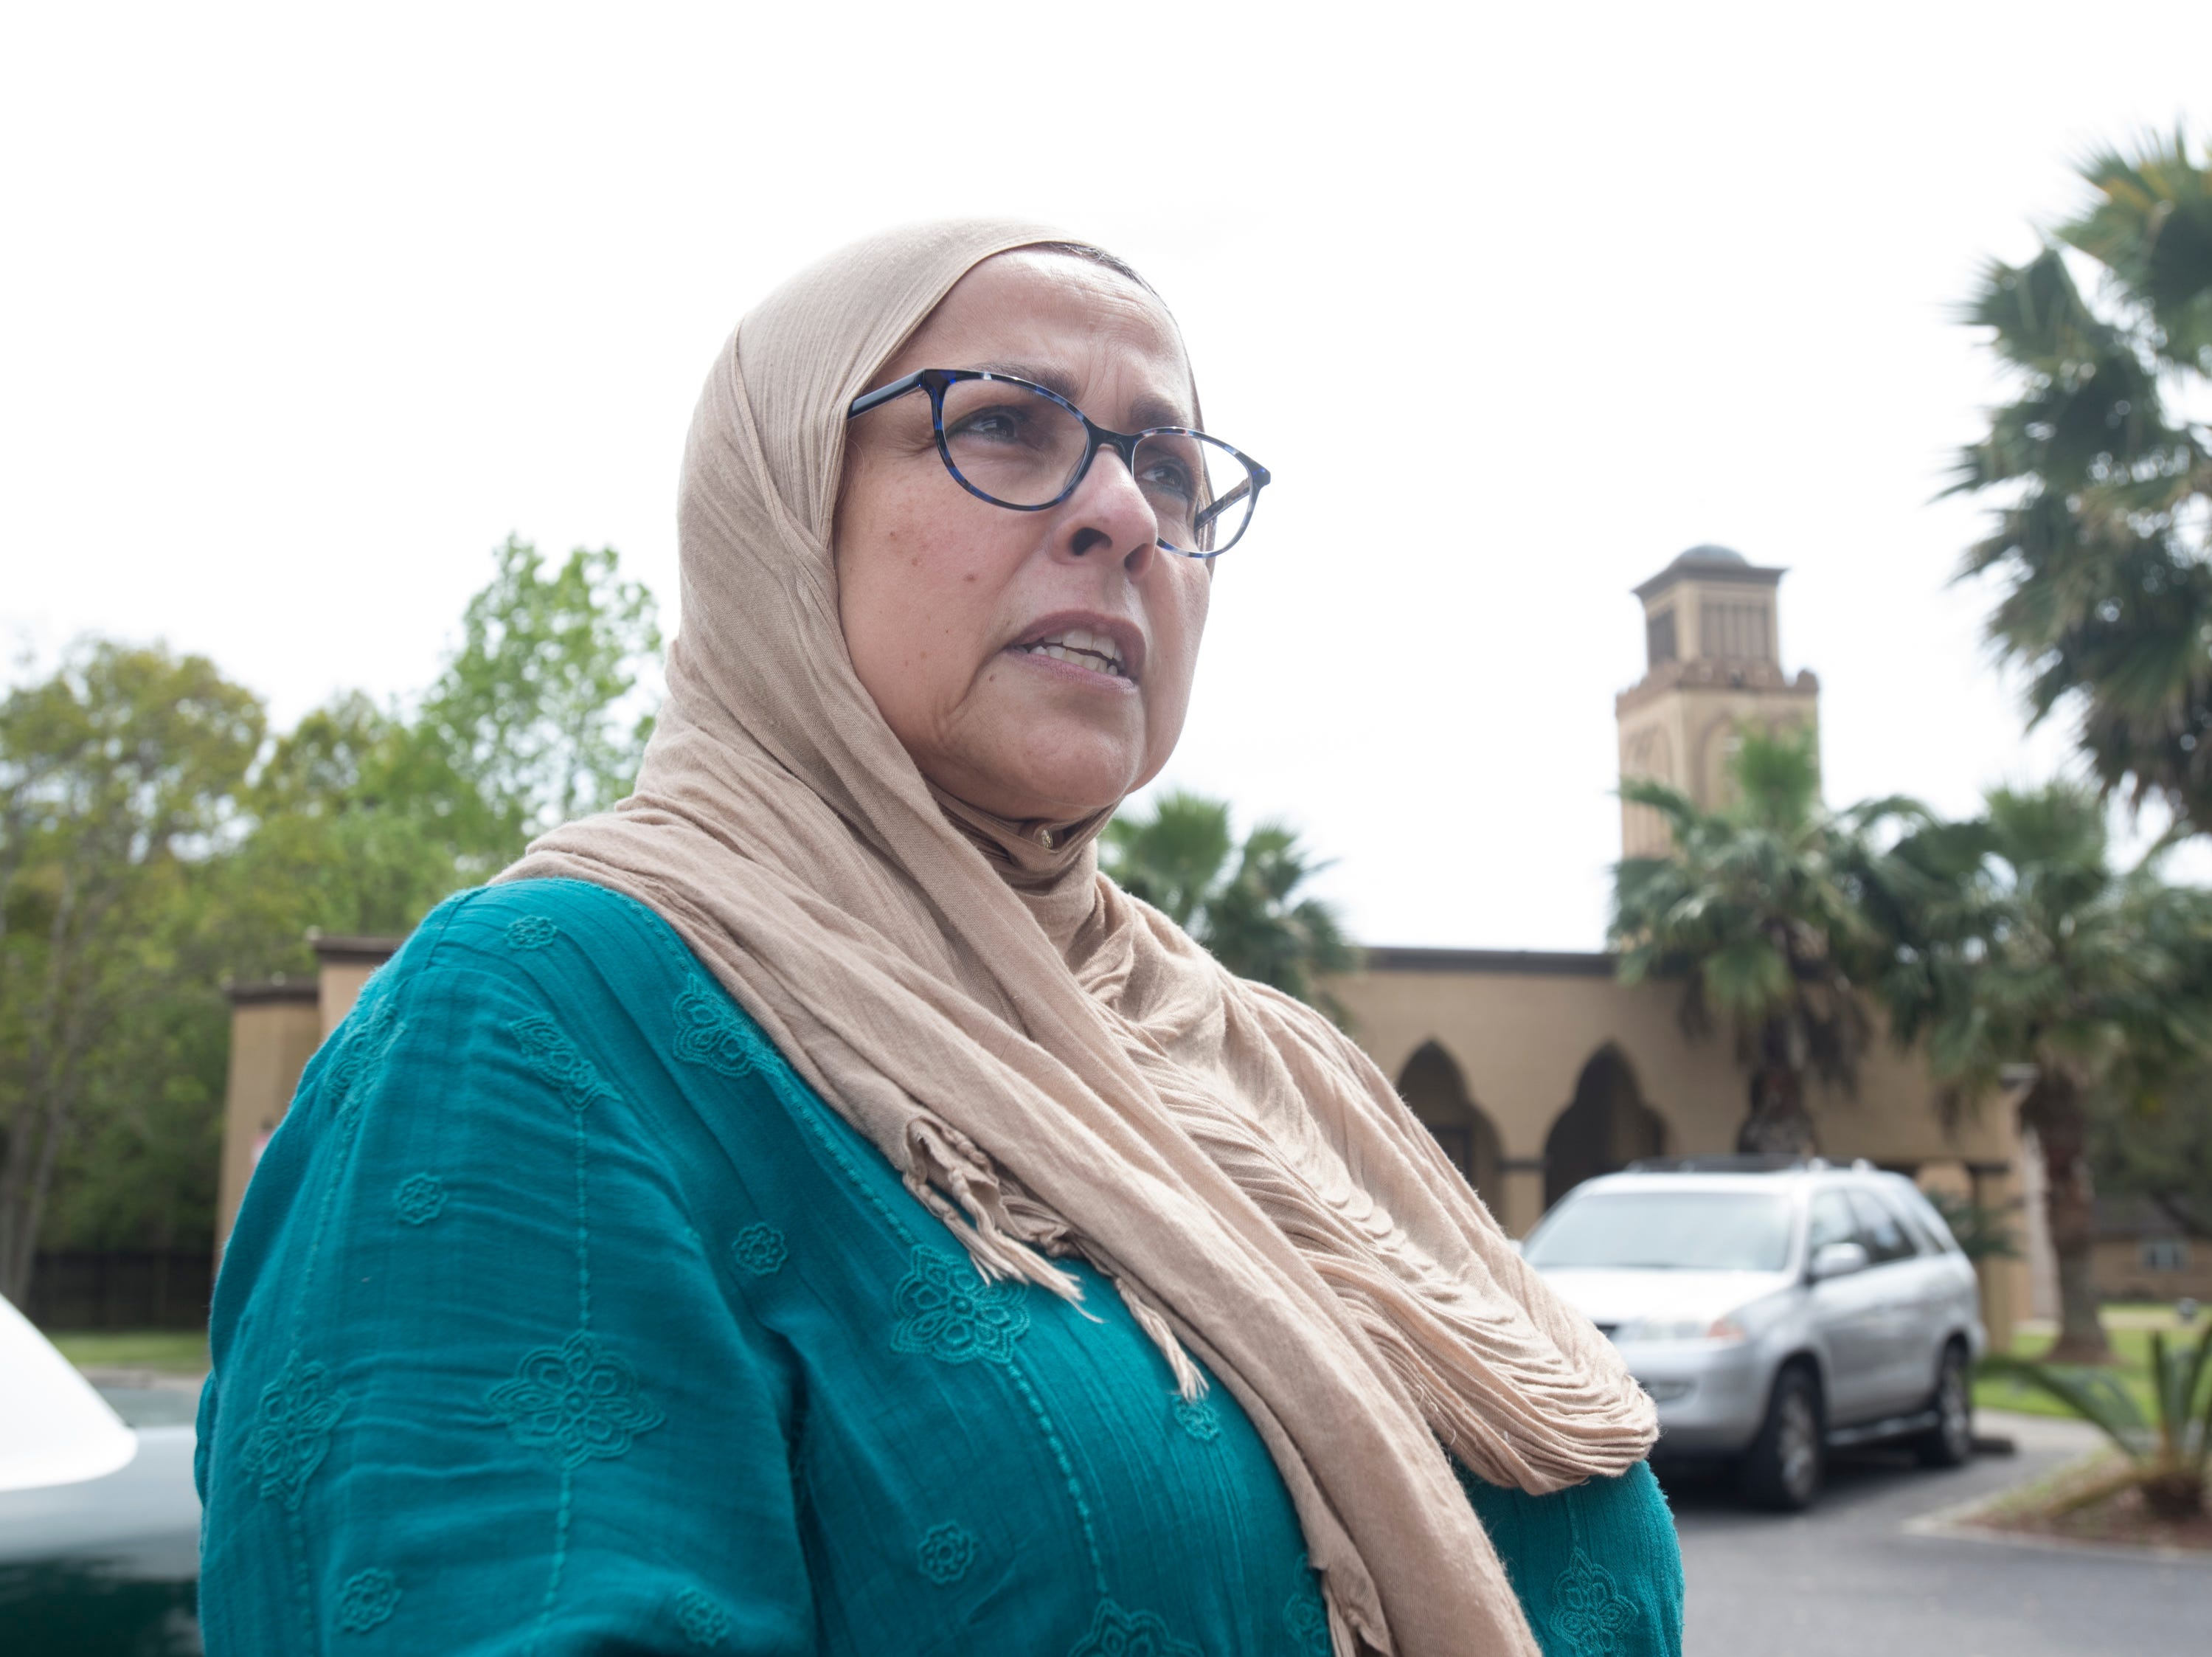 Community organizer and spokesperson Salma Ashmani talks about the New Zealand mosque massacre prior to Jumu'ah (Friday Prayer) at the Islamic Center of Northwest Florida in Pensacola on Friday, March 15, 2019.